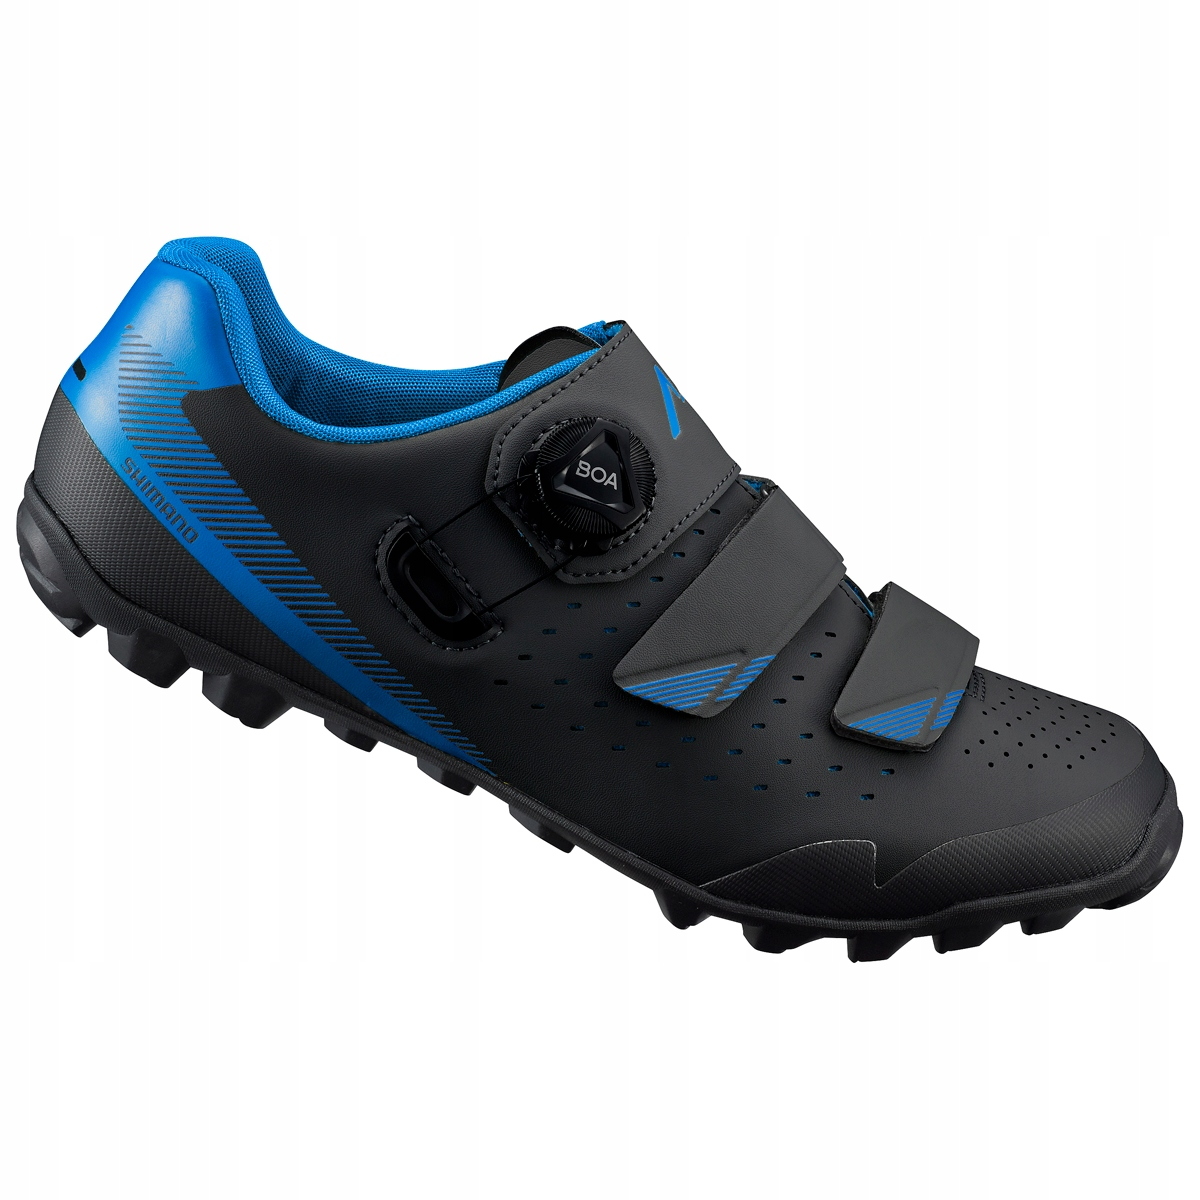 4267150a8b7d85 Item Shimano SH-ME400 SPD MTB shoes size 44 New 2019